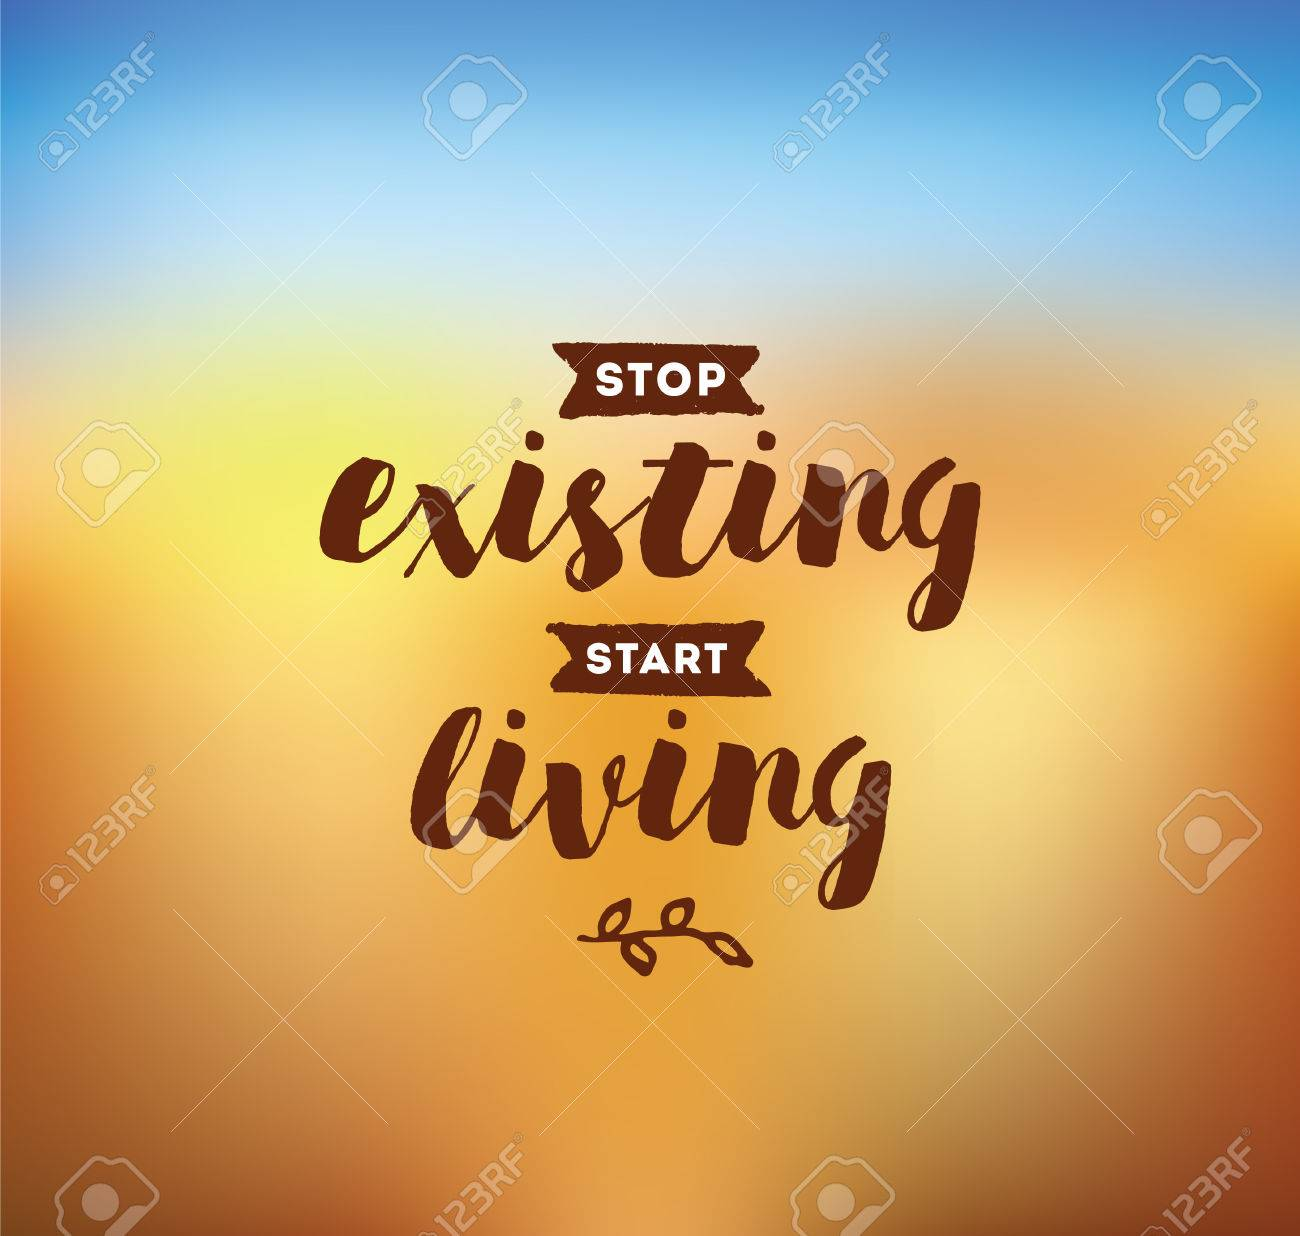 Stop Existing, Start Living